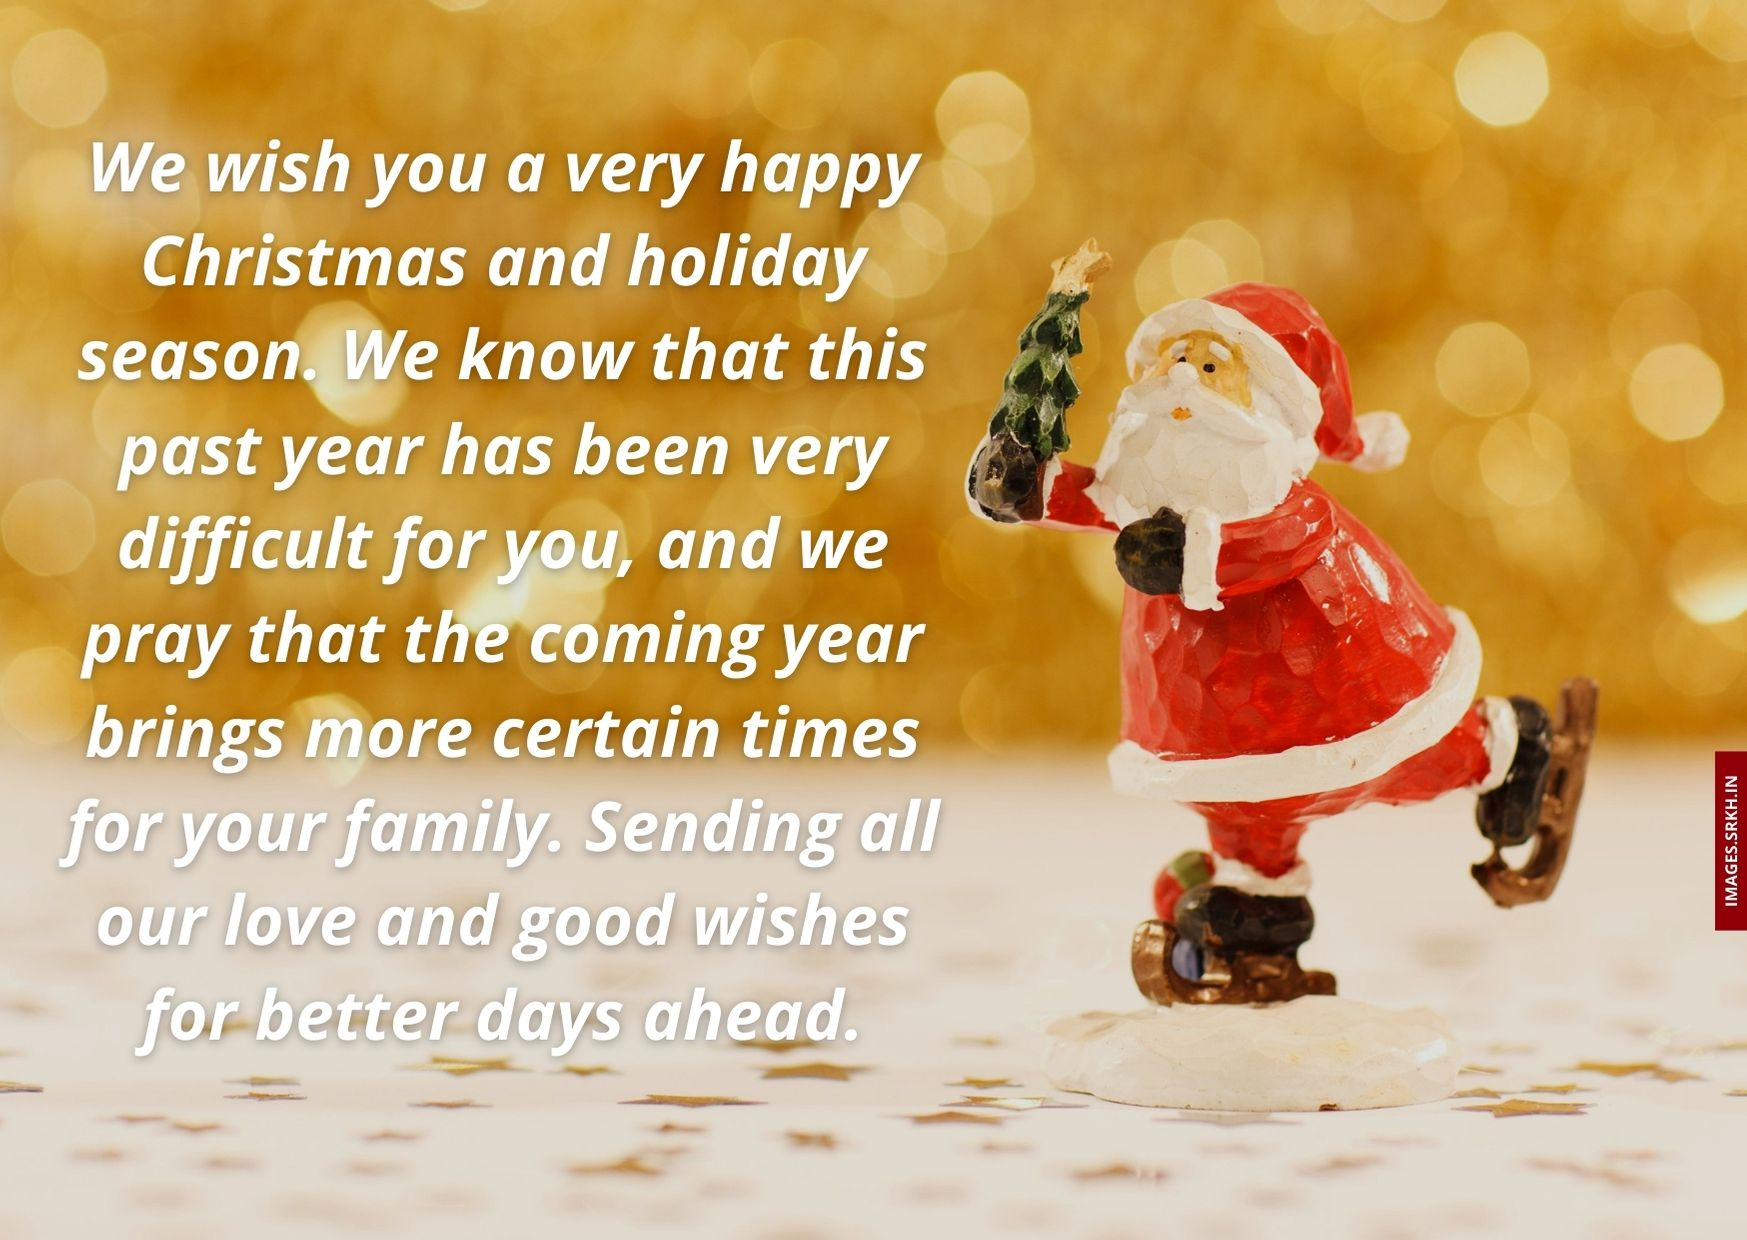 Xmas Wishes Images full HD free download.